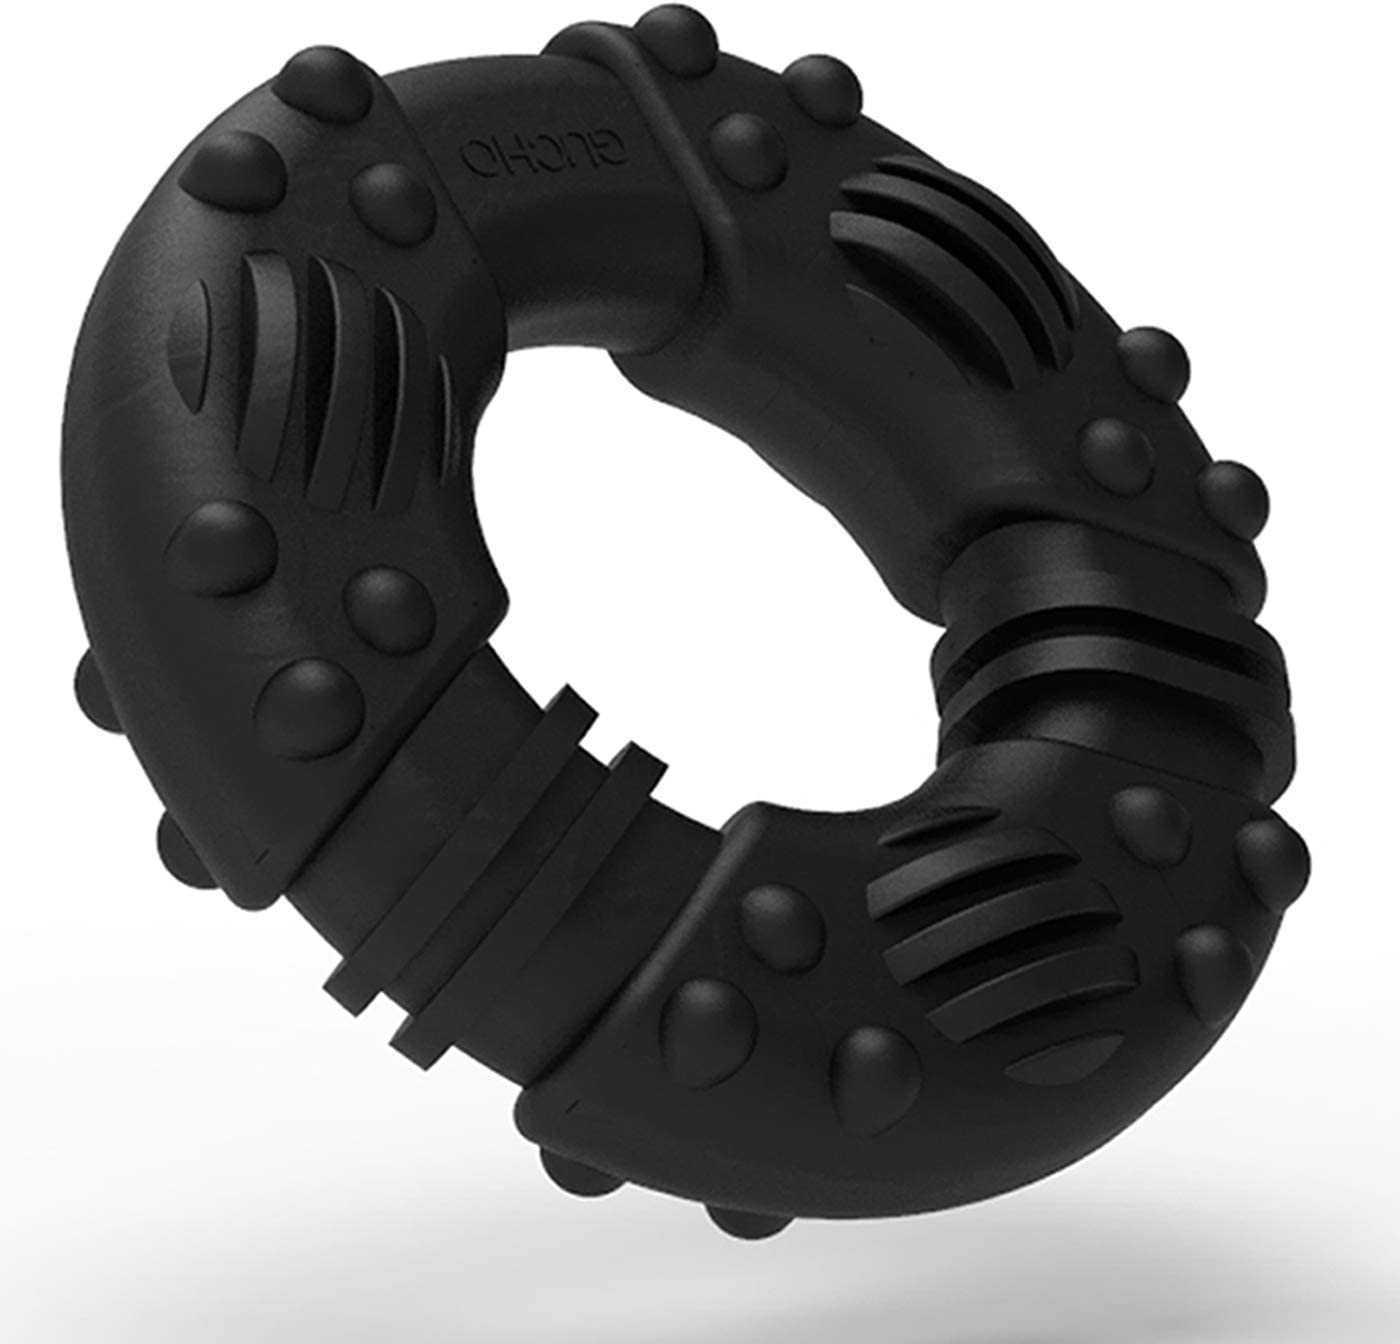 Popular popular AIZARA Dog Chew Toys Max 80% OFF Chewers-Indestructible Aggressive Tough for